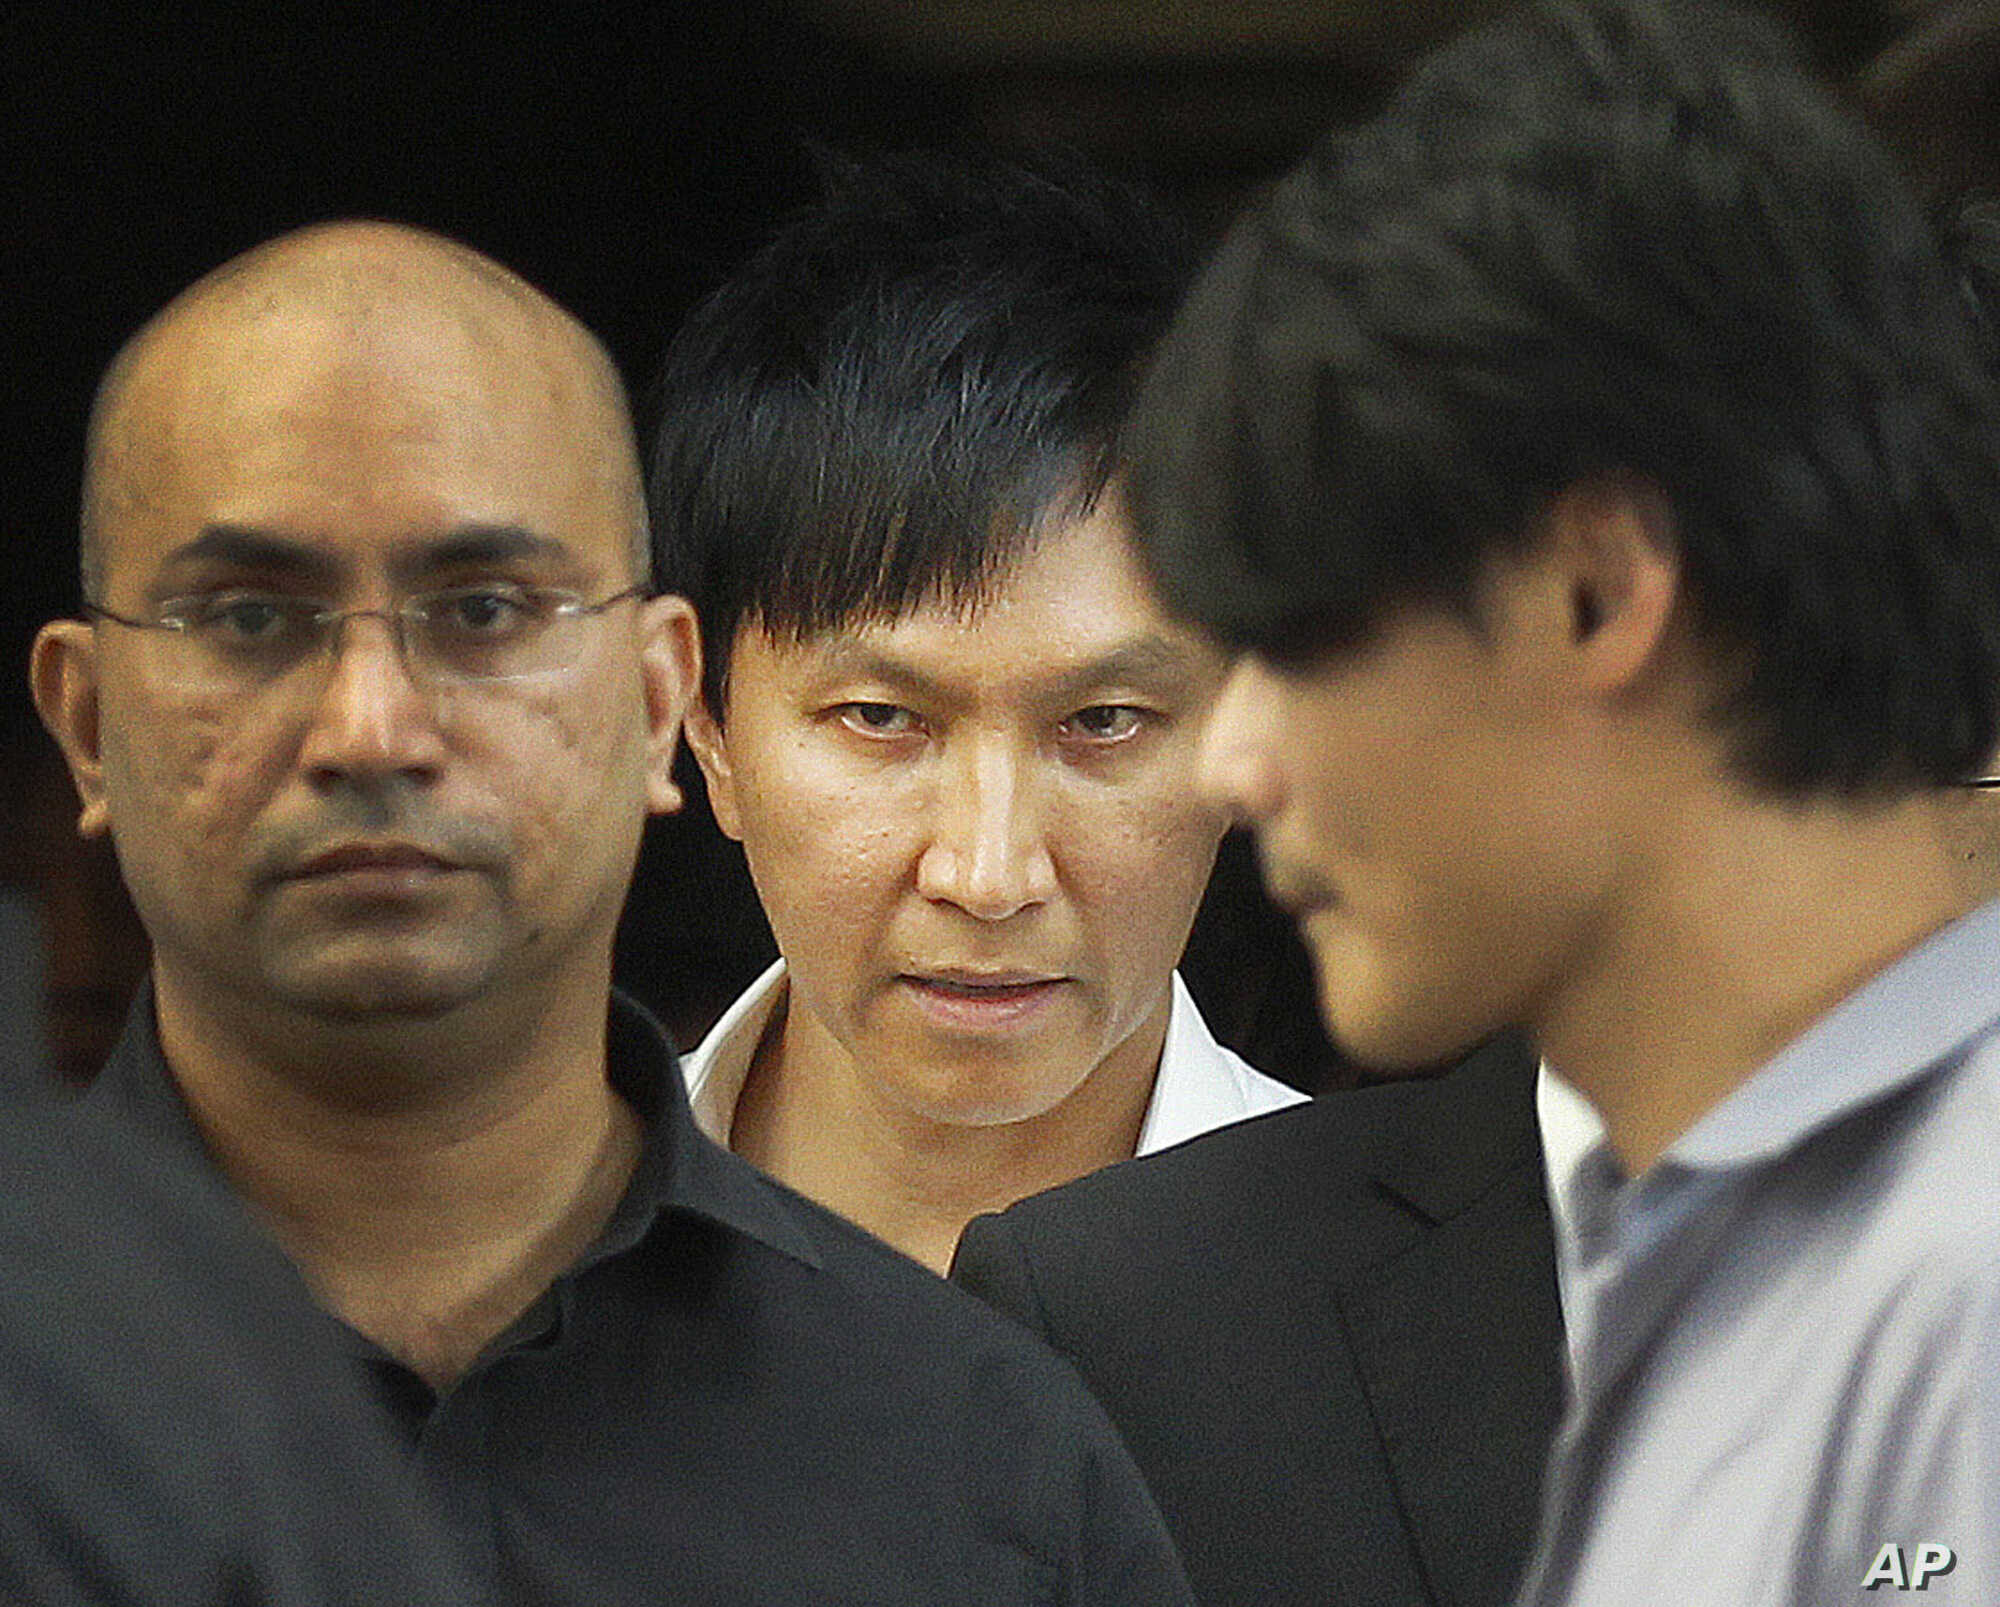 FILE - City Harvest Church founder Kong Hee, center, is surrounded by supporters as he leaves the Subordinate Courts Wednesday, June 27, 2012 in Singapore.